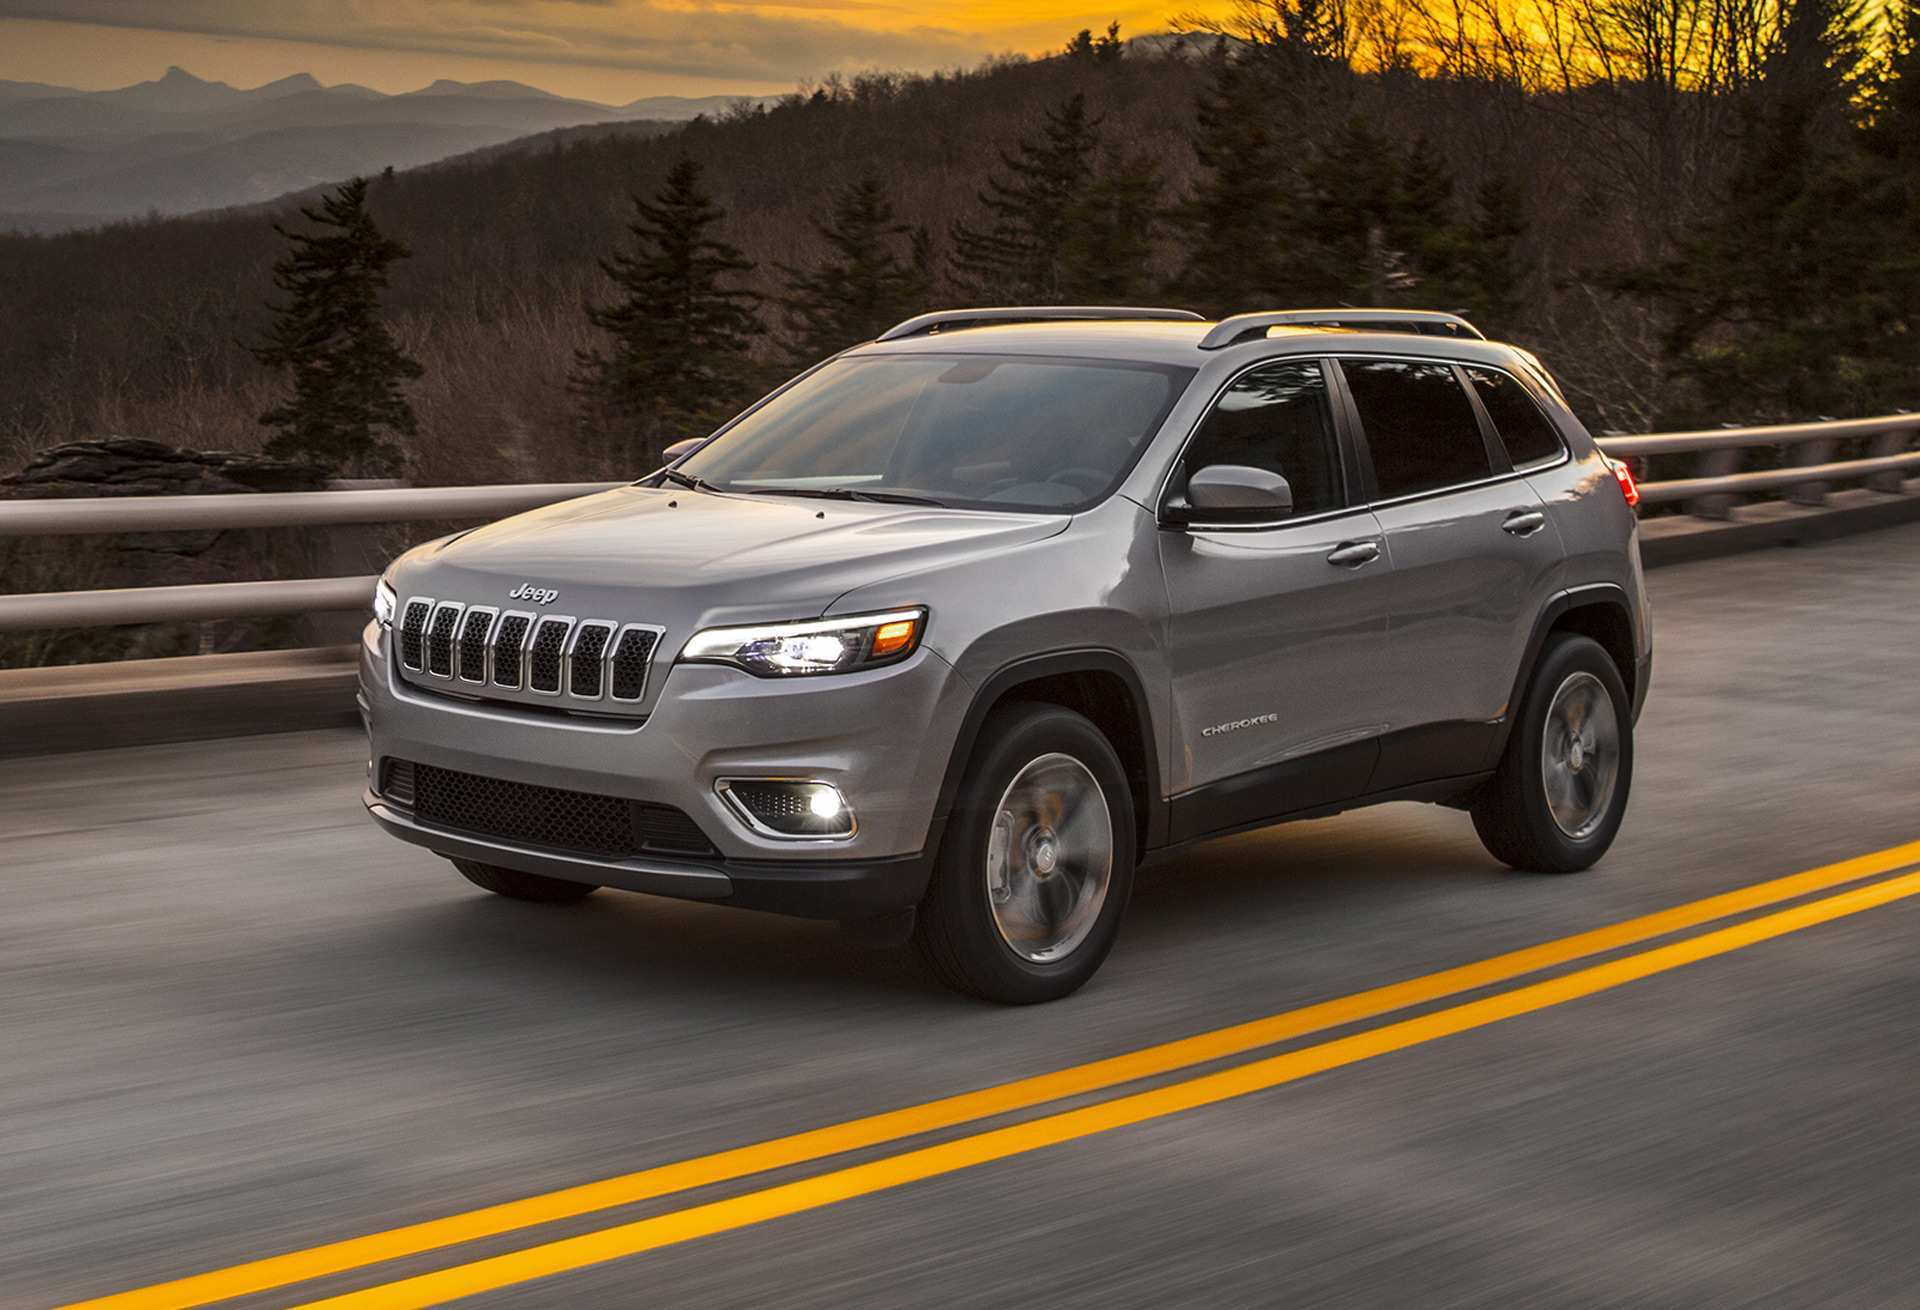 20 New 2020 Jeep Wagoneer 2018 Picture for 2020 Jeep Wagoneer 2018